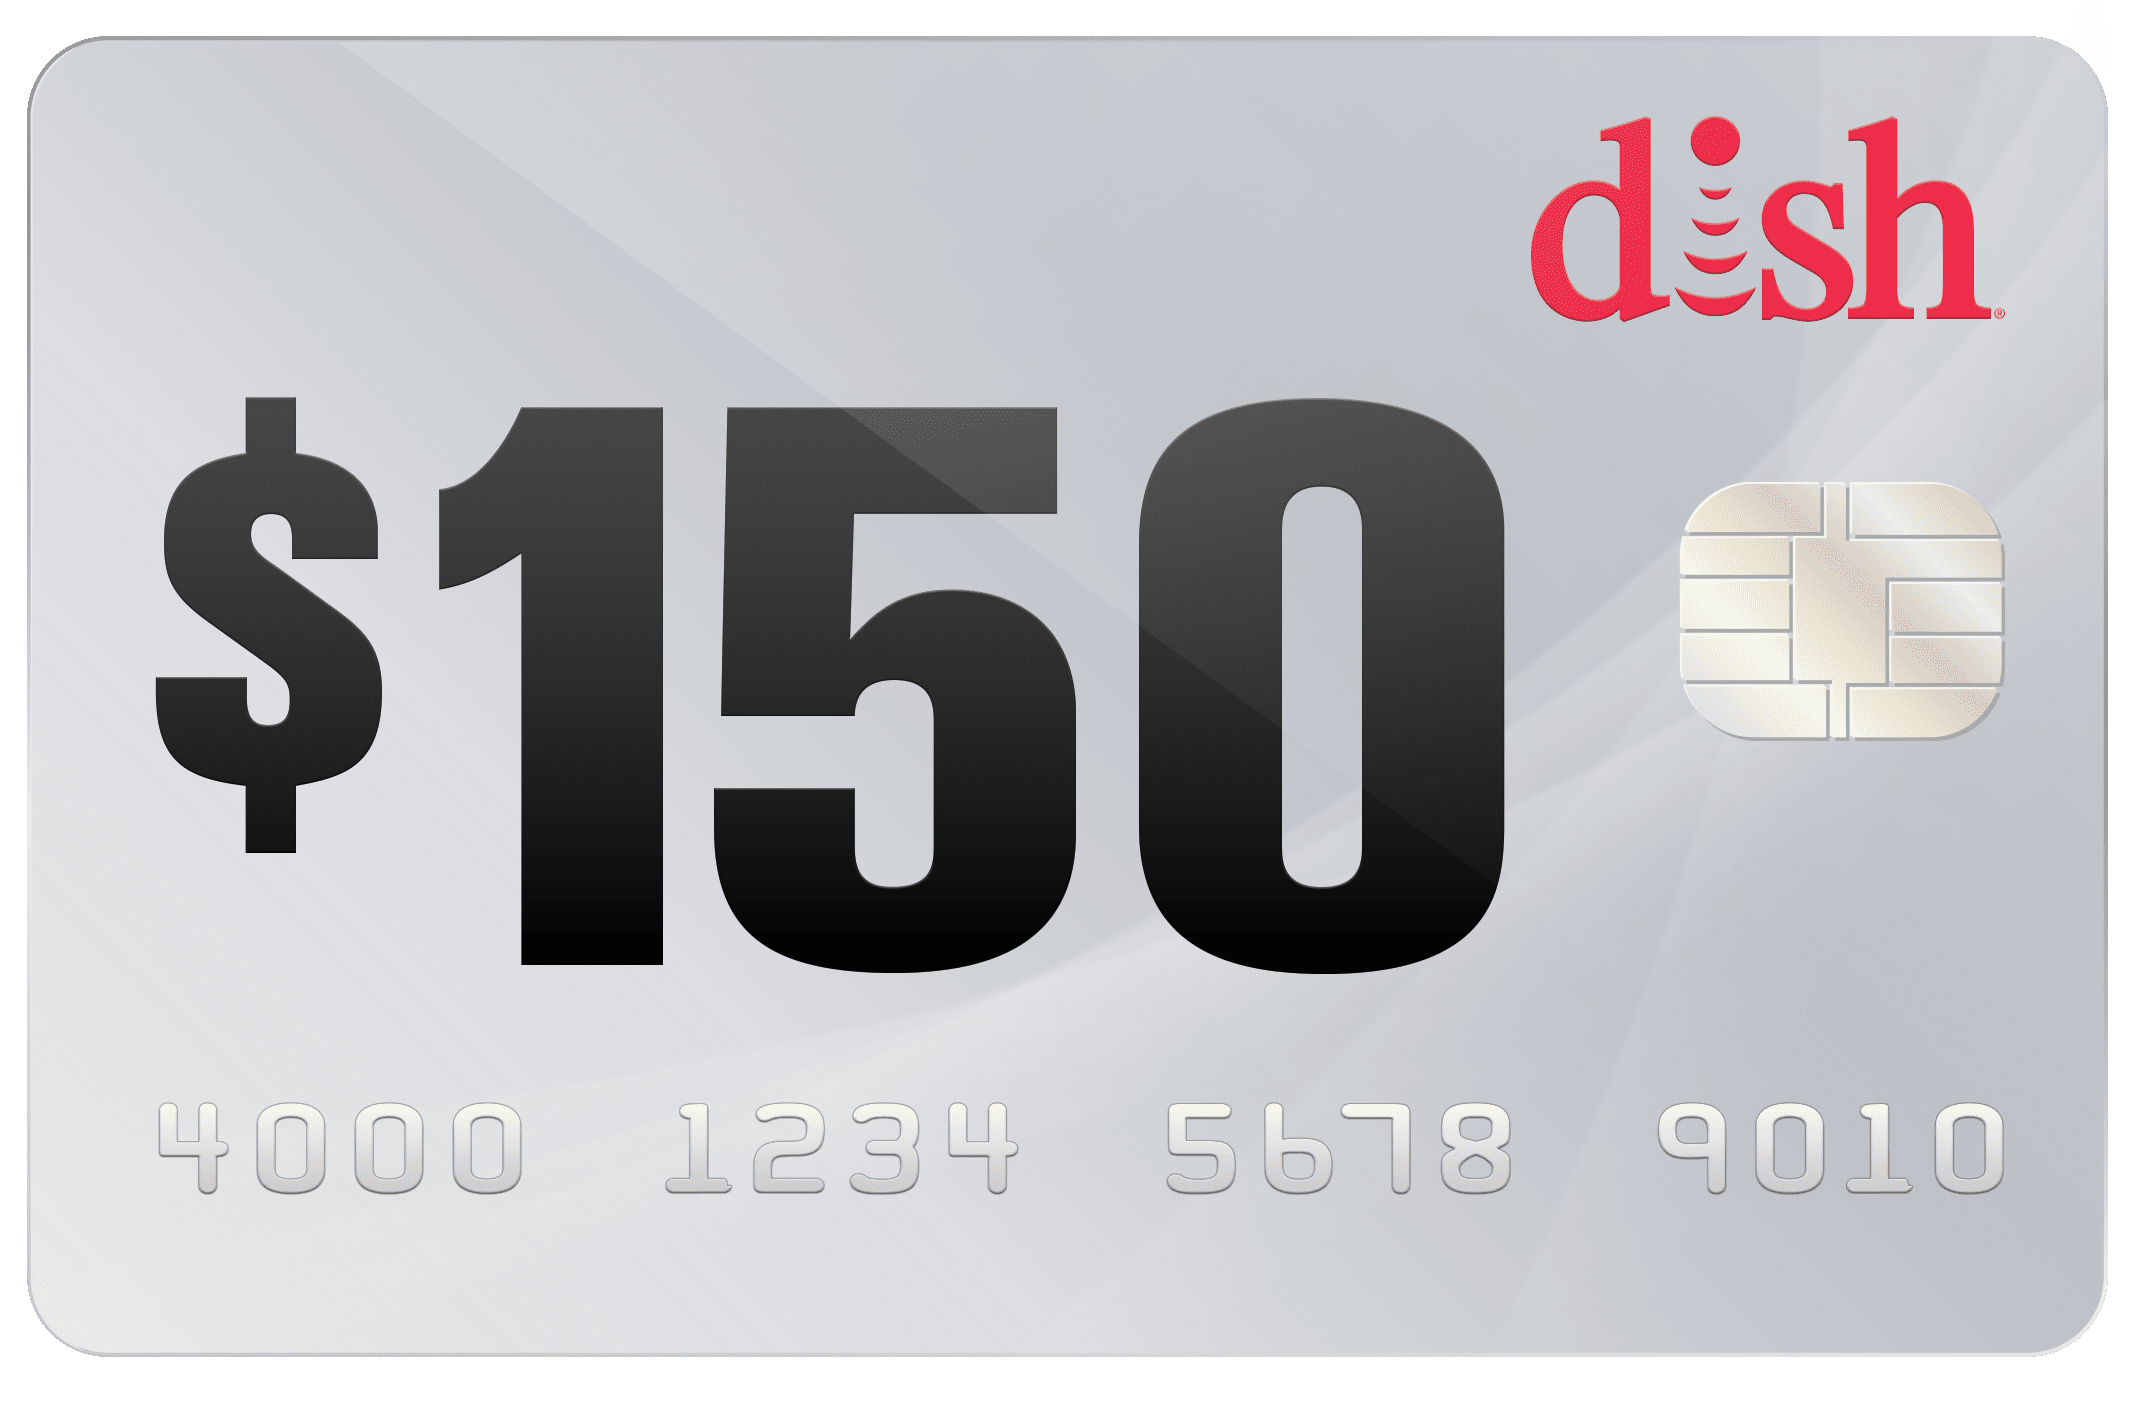 dish network gift card 1